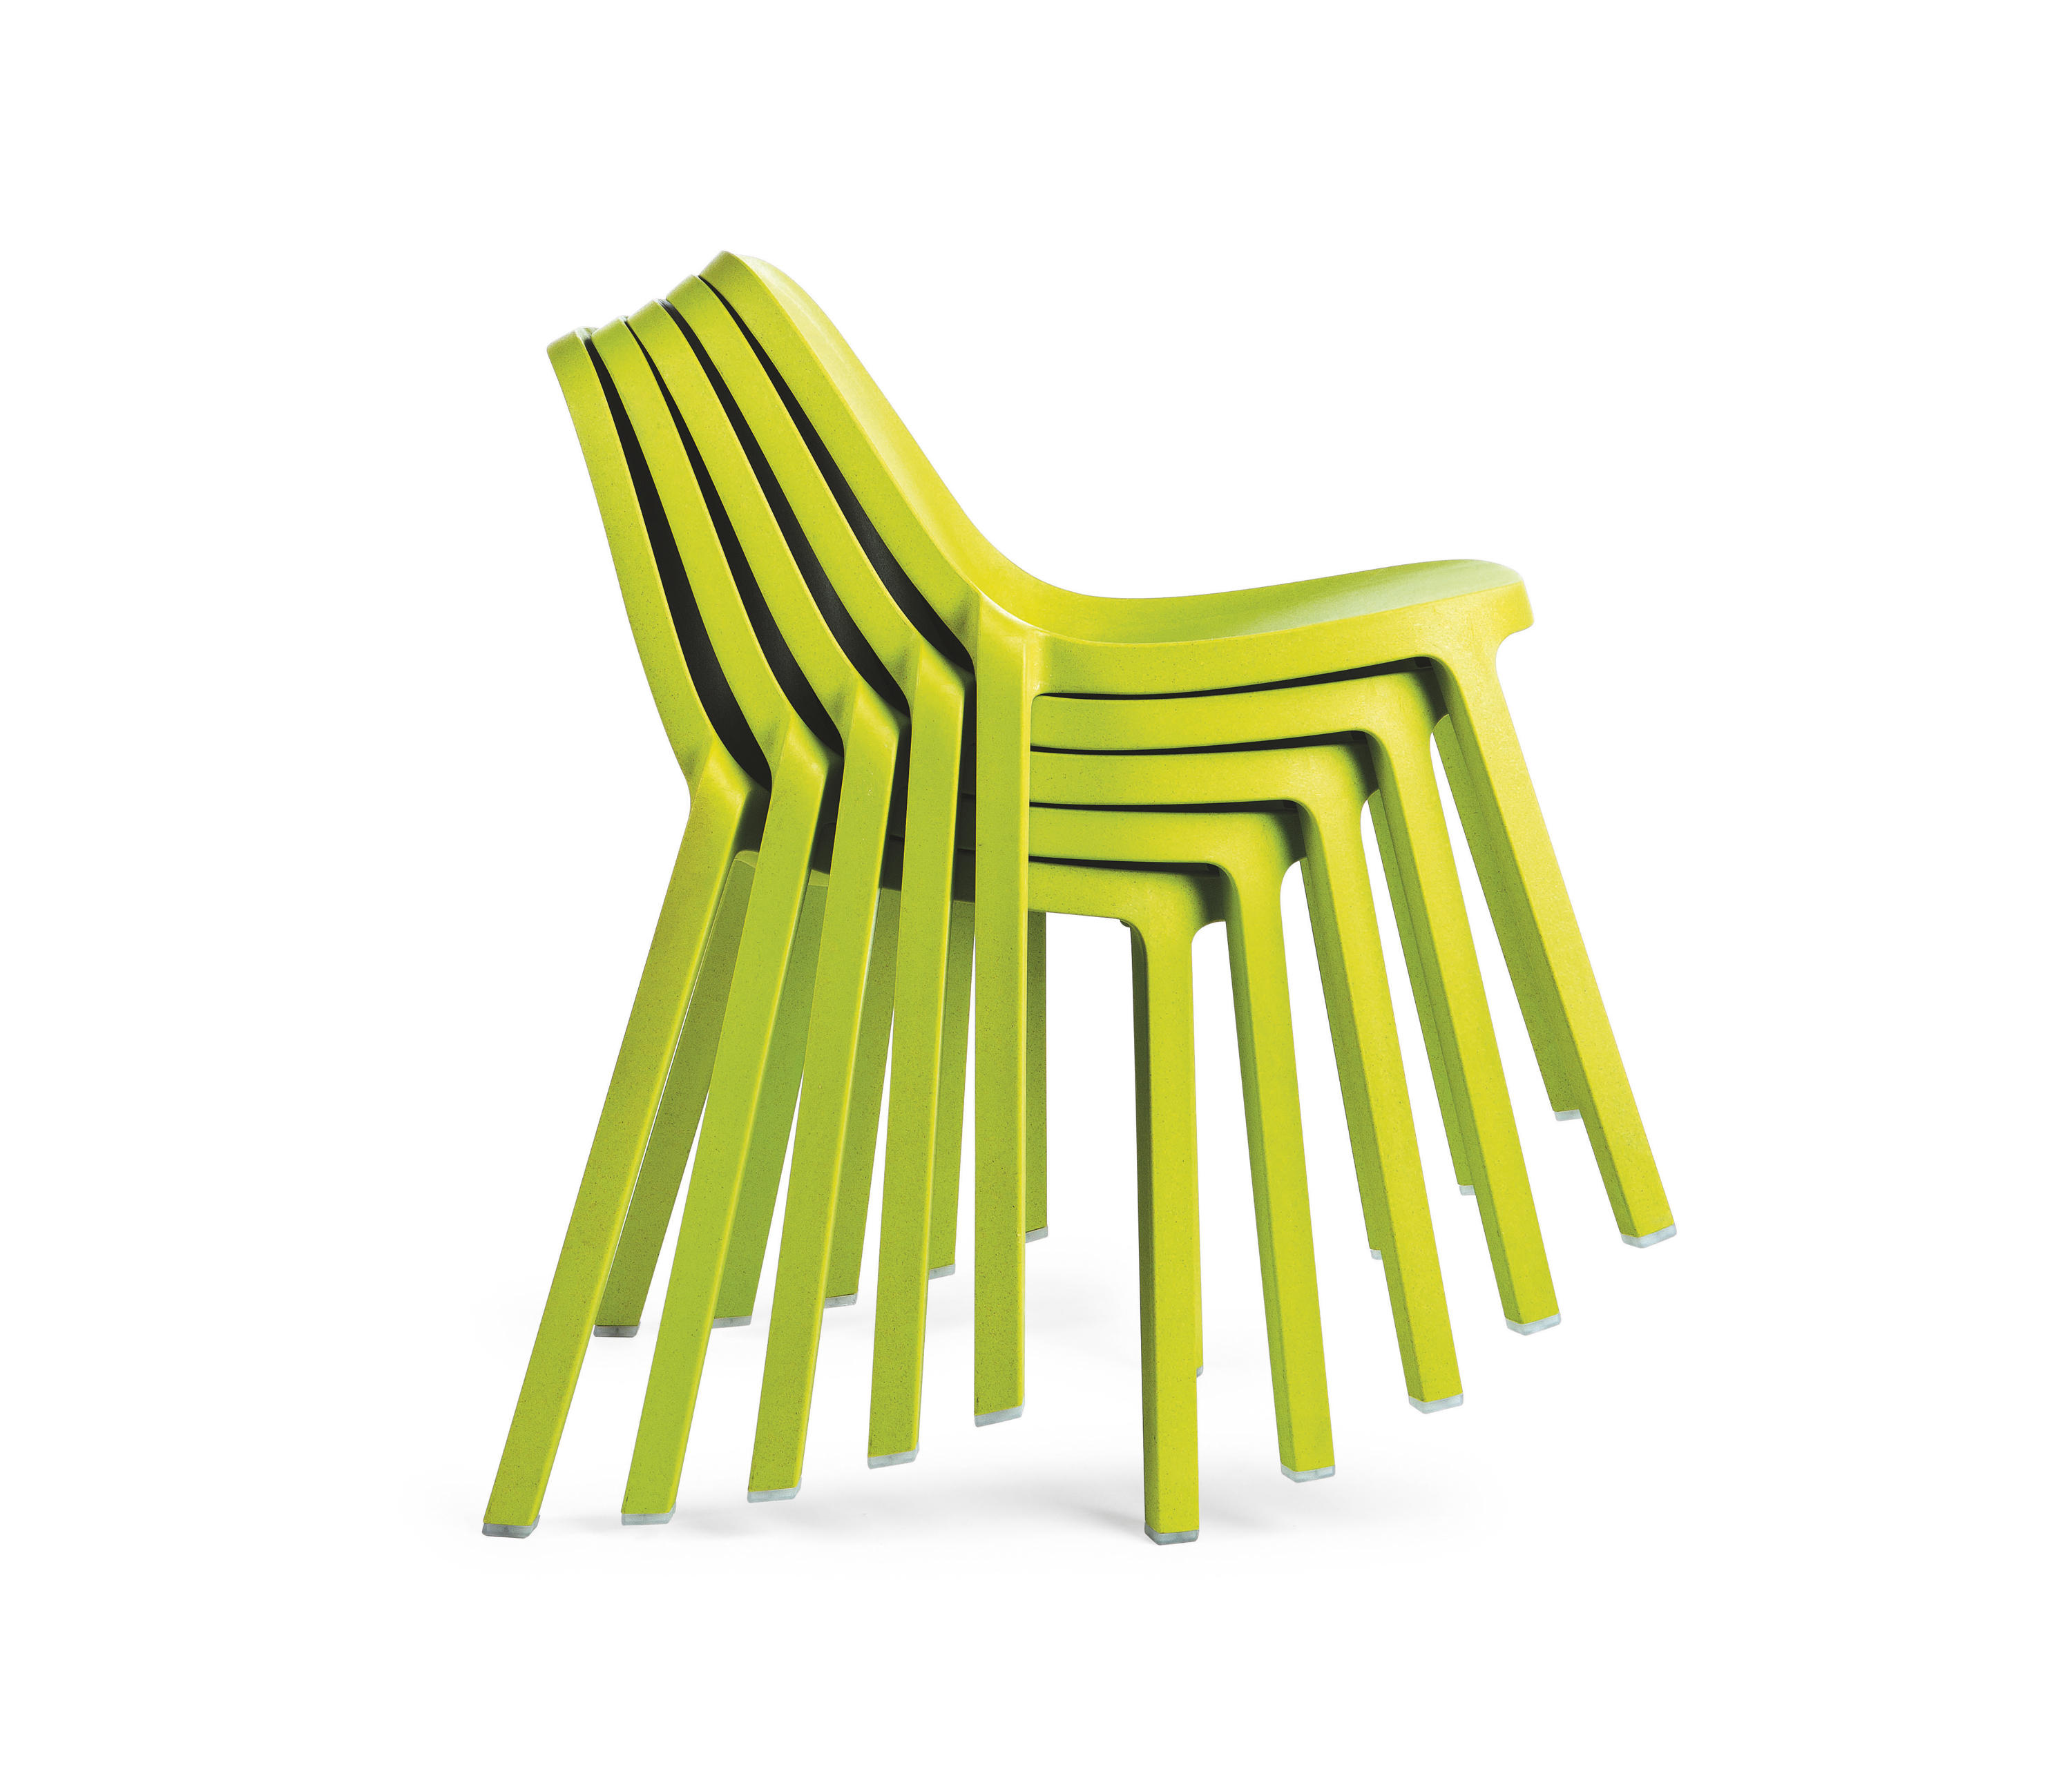 Broom chair for emeco in 2012 to showcase the properties of a new wood - Broom Chair By Emeco